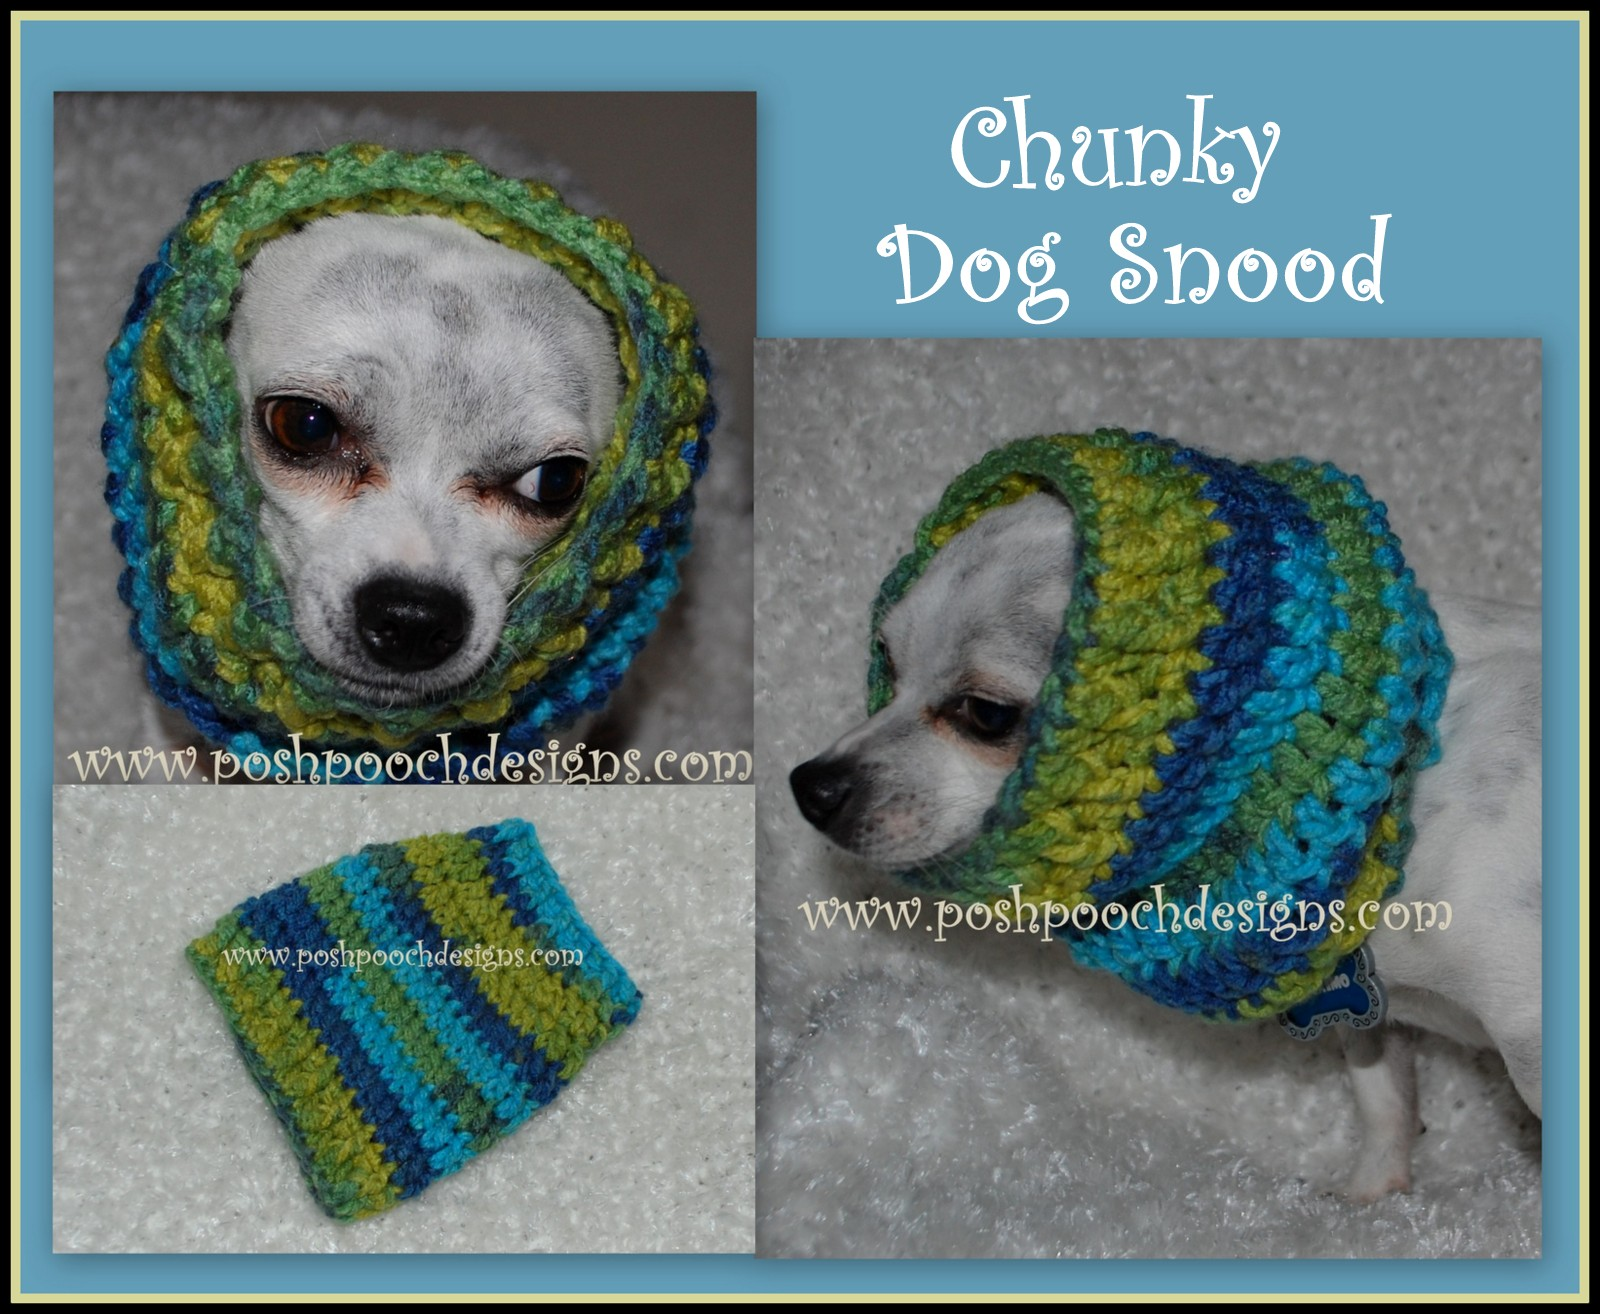 Knitting Pattern Dog Snood : Posh Pooch Designs Dog Clothes: Dog Snood Crochet Pattern - For All Size Dogs